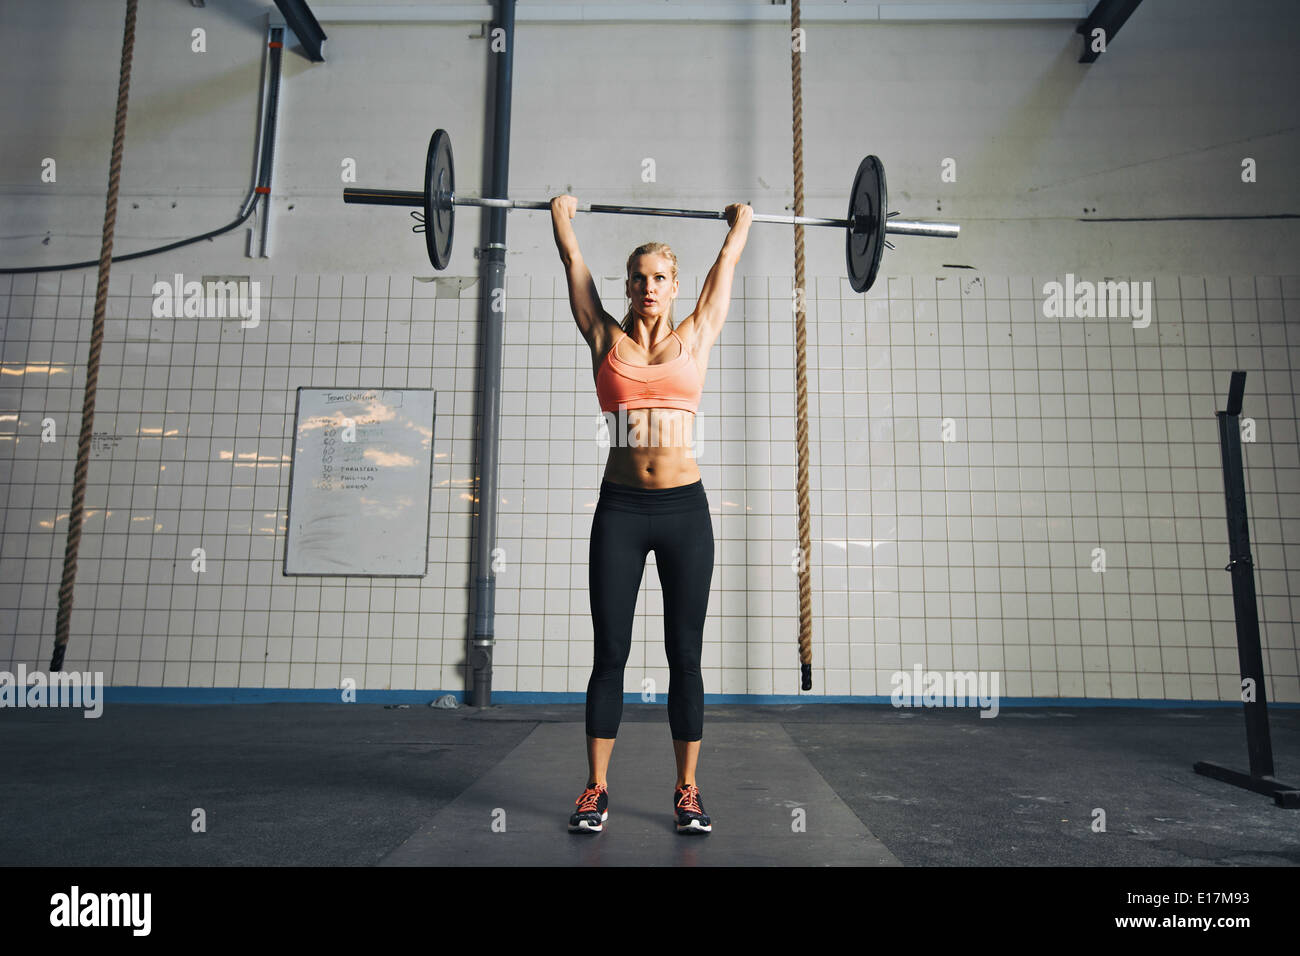 Full length image of strong young woman with barbell and weight plates overhead doing crossfit exercise. Fit female athlete. - Stock Image